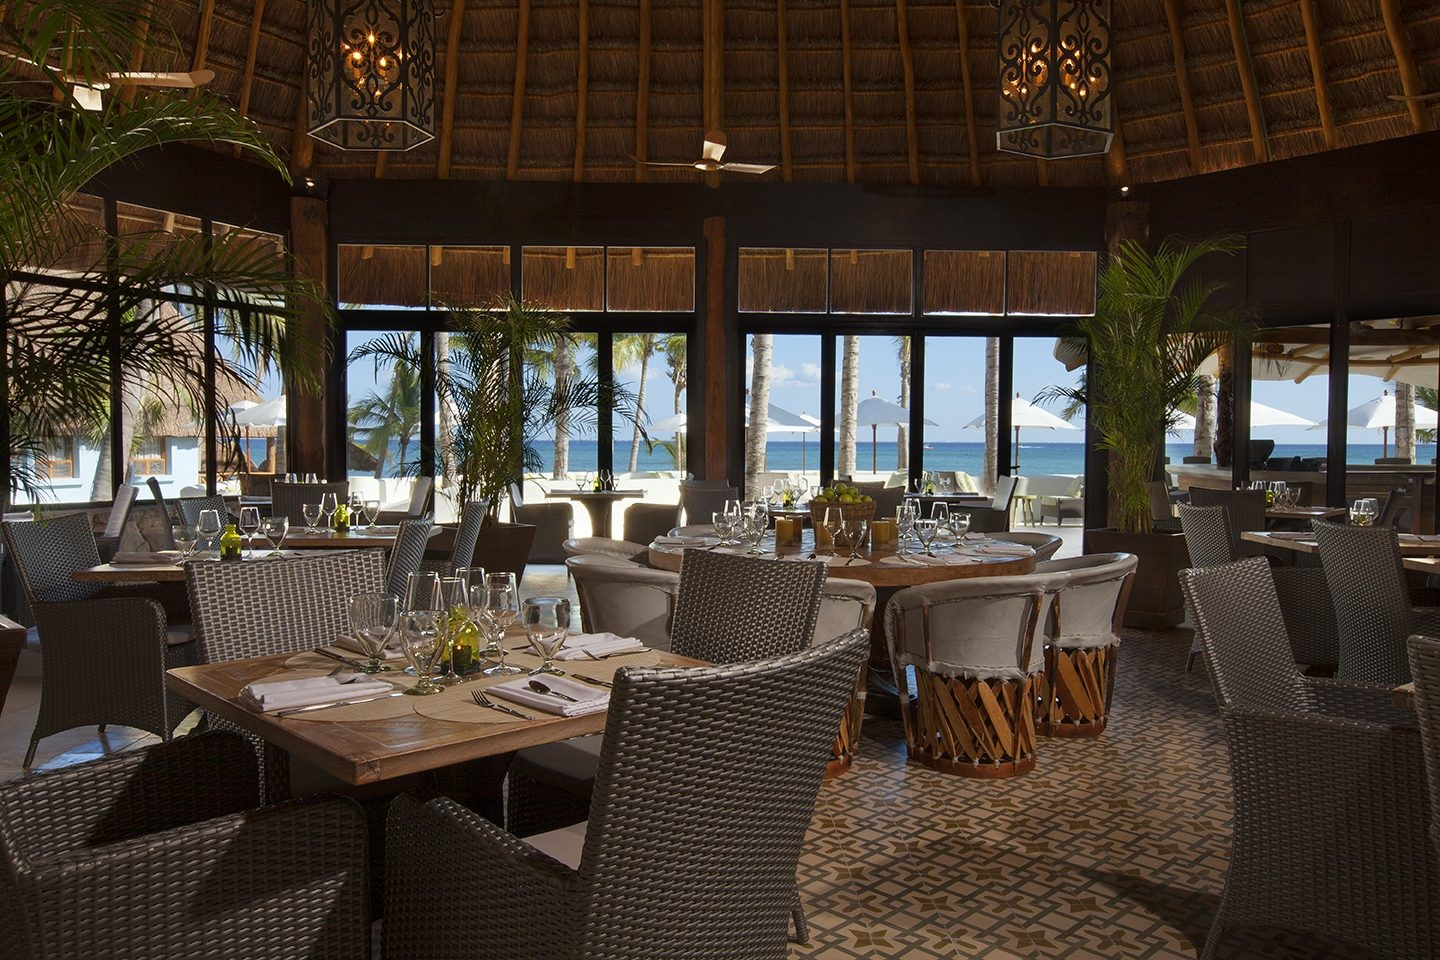 Restaurant at Mahekal Beach Resort